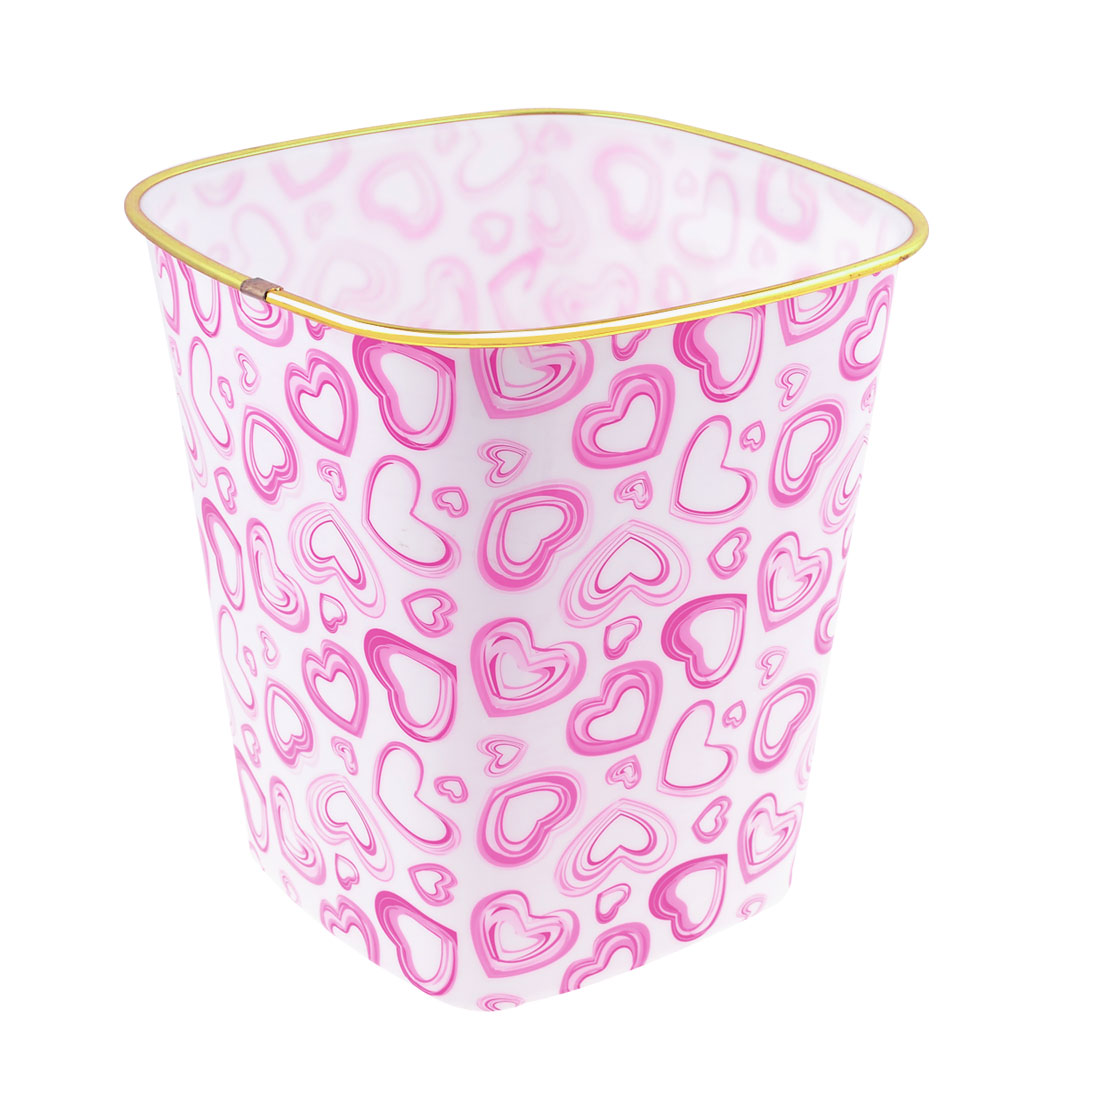 Middle Size Pink Heart Printed Gold Tone Border White Plastic Square Garbage Pail